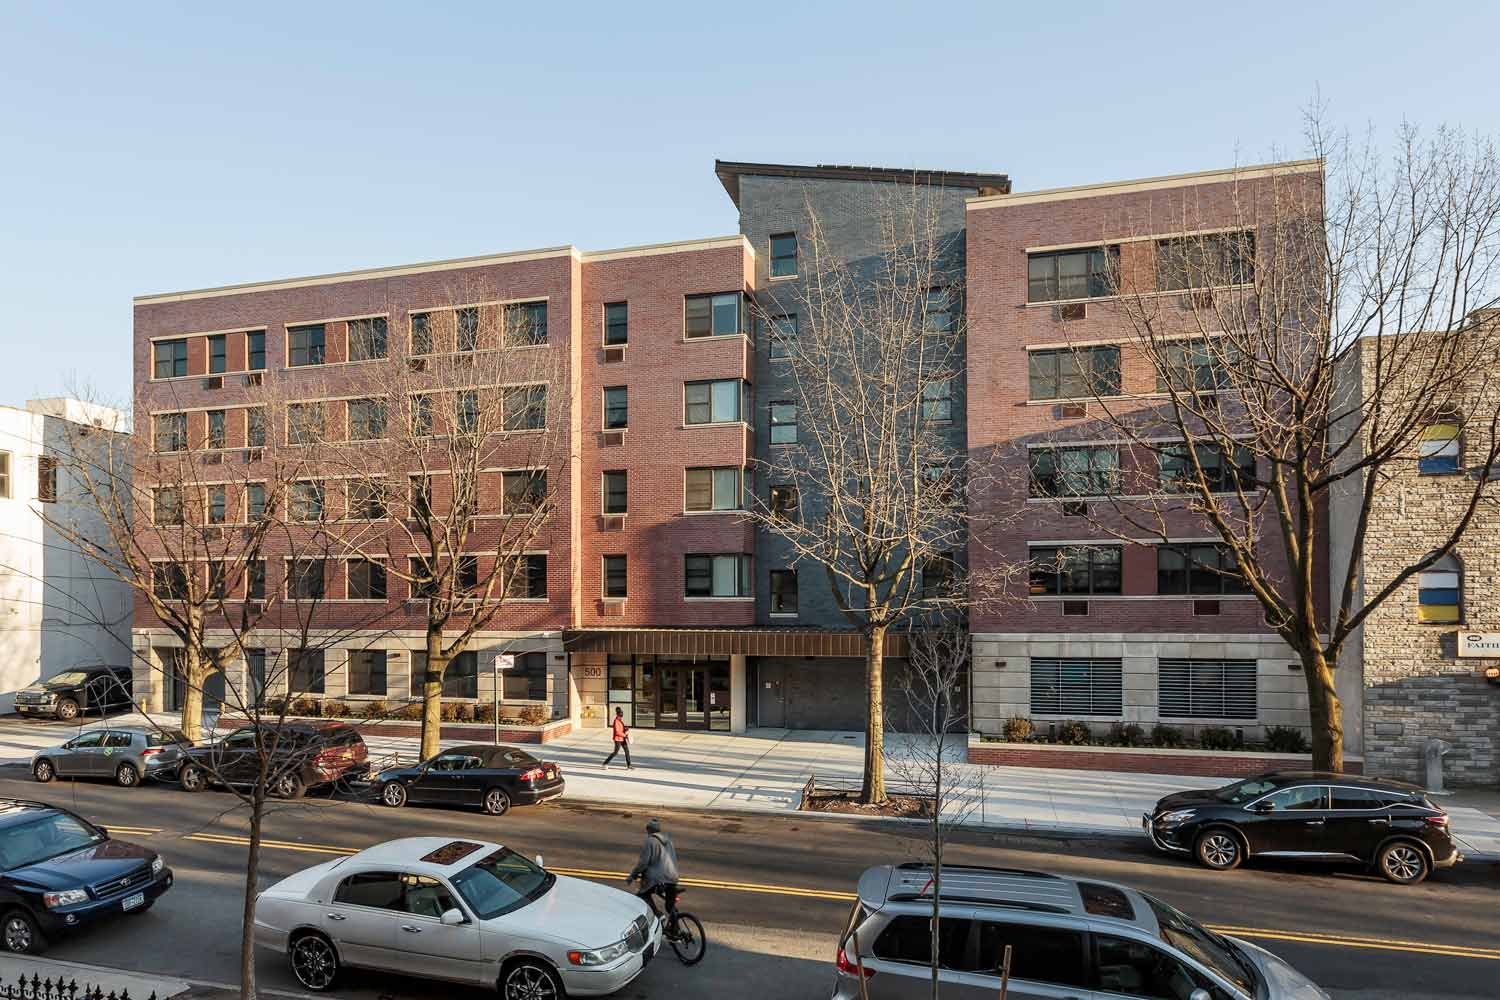 Gates Avenue is a green supportive housing new construction designed by OCV Architects